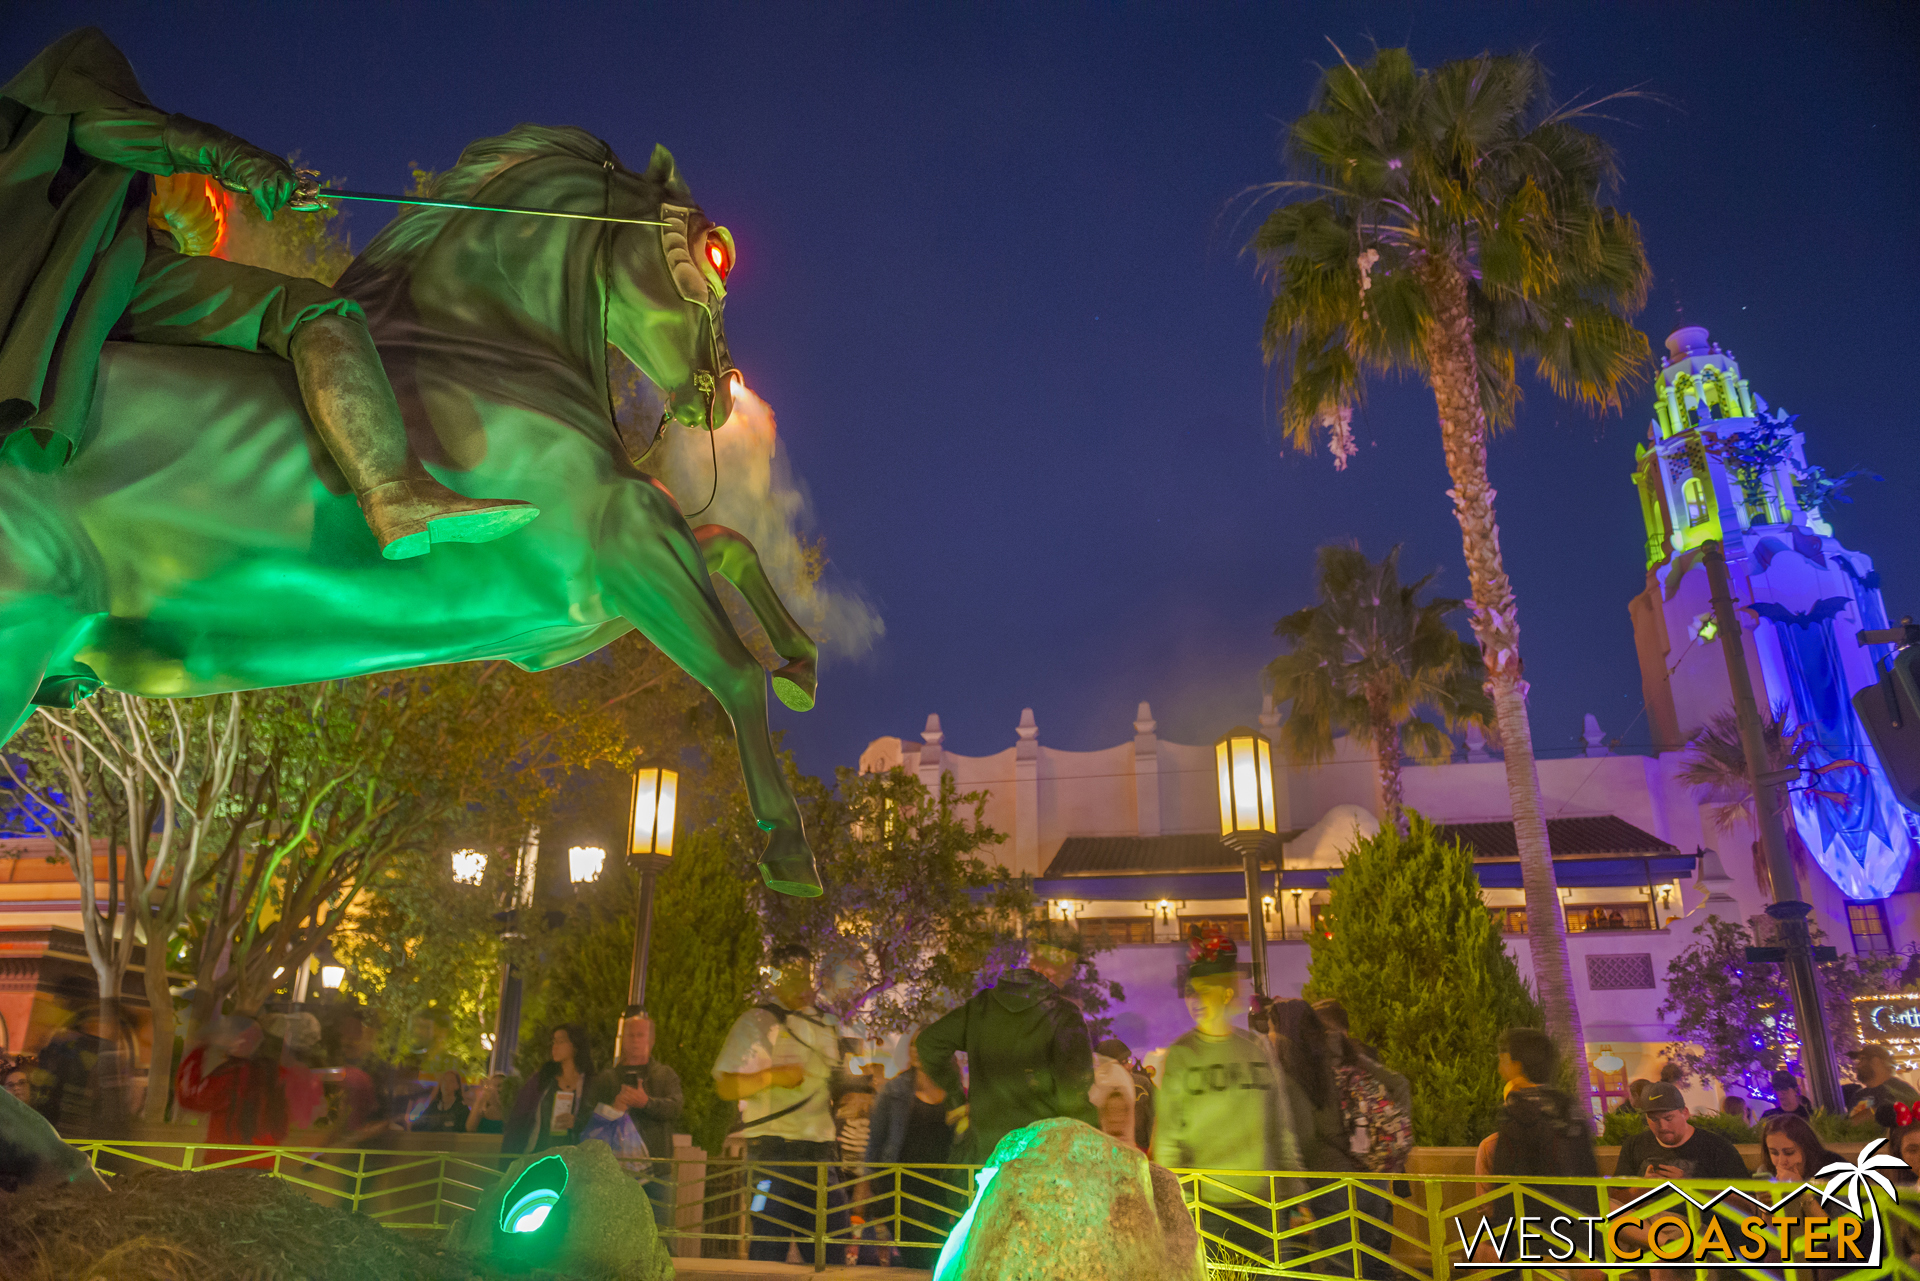 Even more dramatic at night was the Headless Horseman statue.